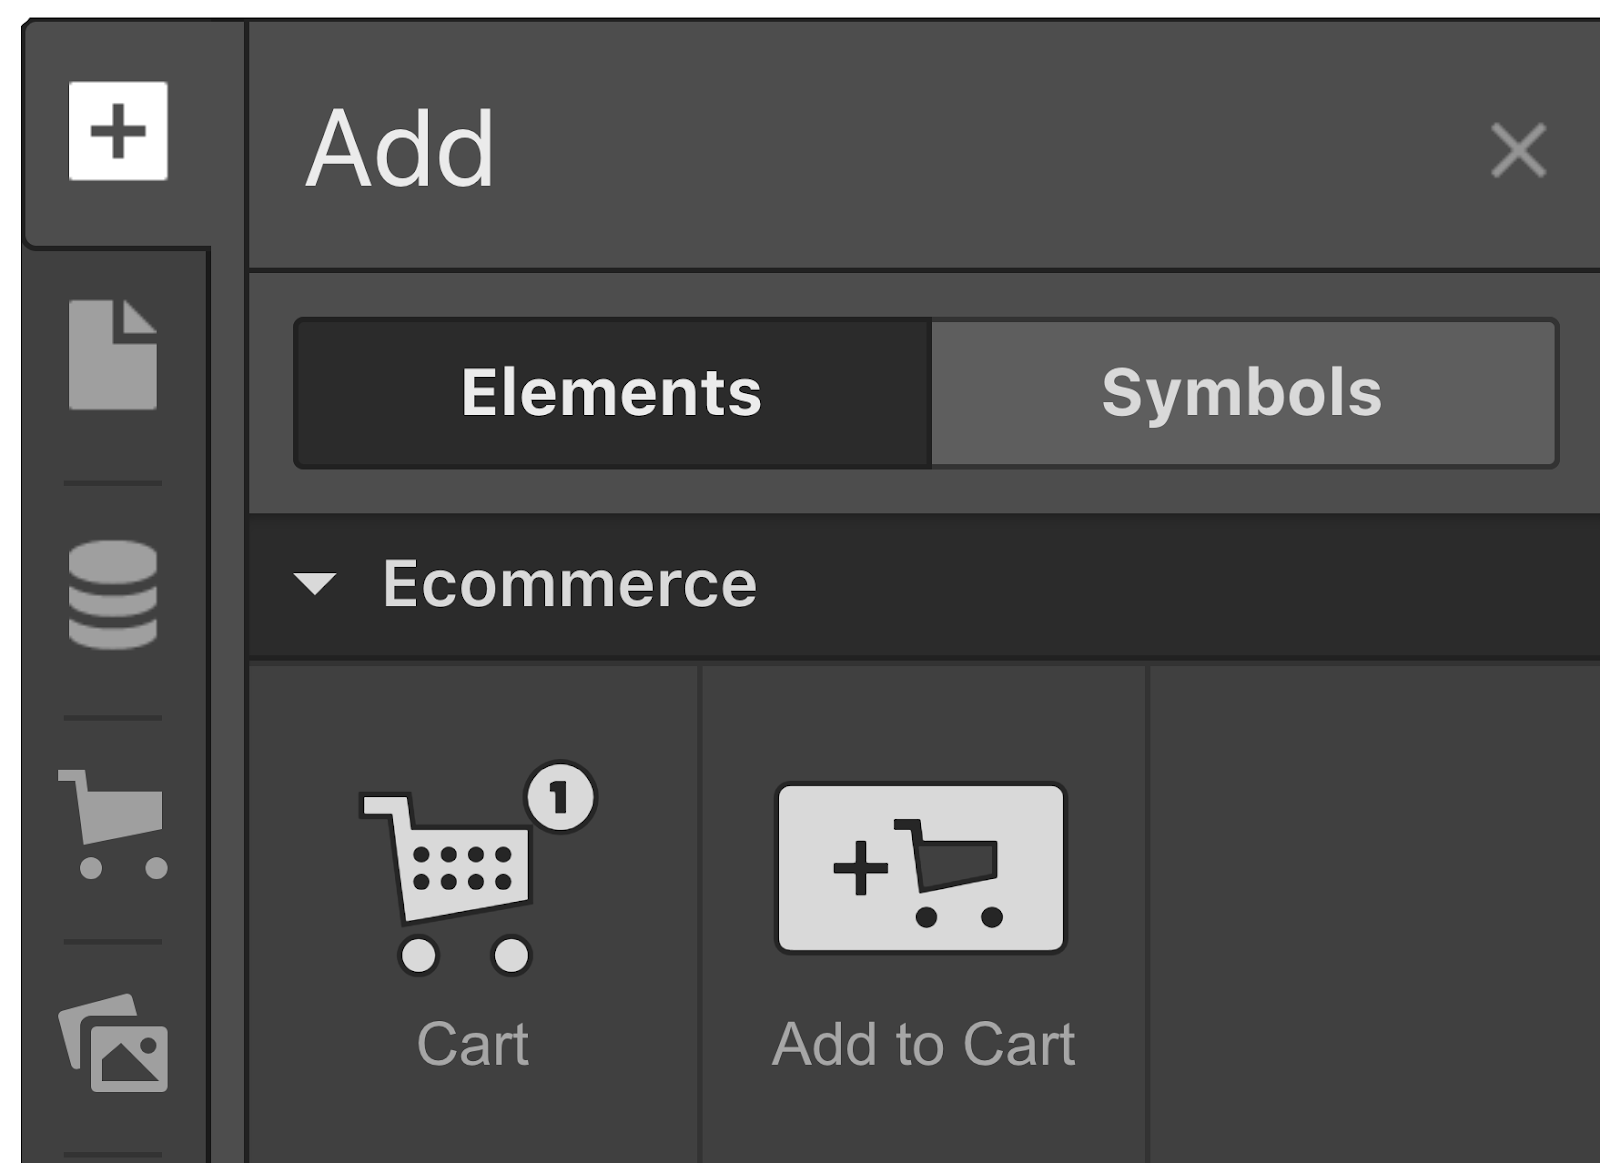 Add a cart from the Add panel.